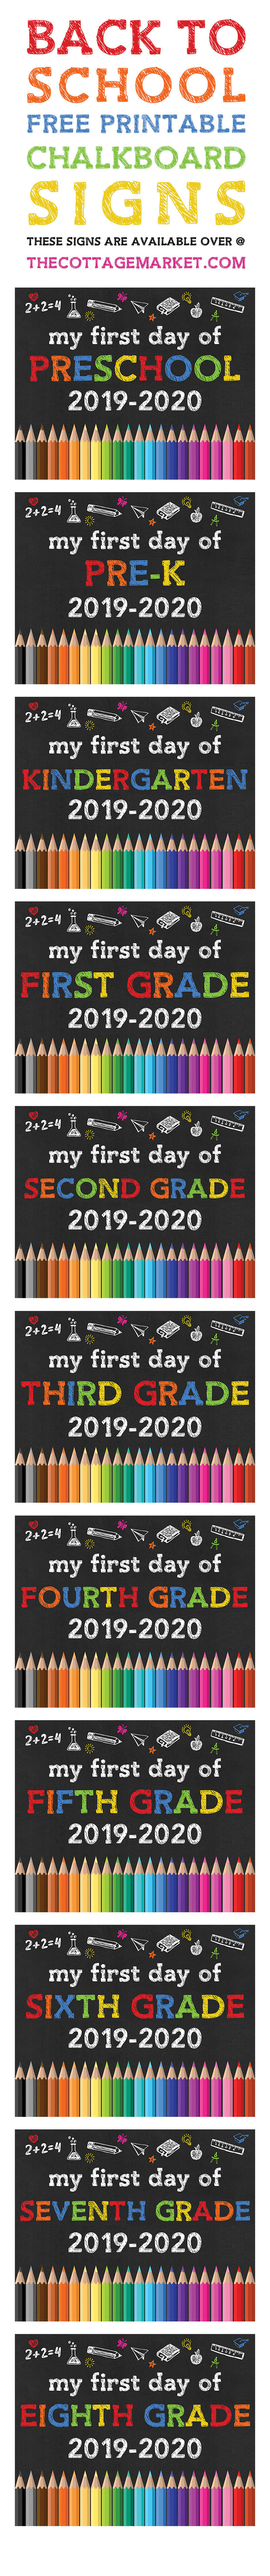 https://thecottagemarket.com/wp-content/uploads/2019/07/T-TCM-2019-2020-BacktoSchool.jpg